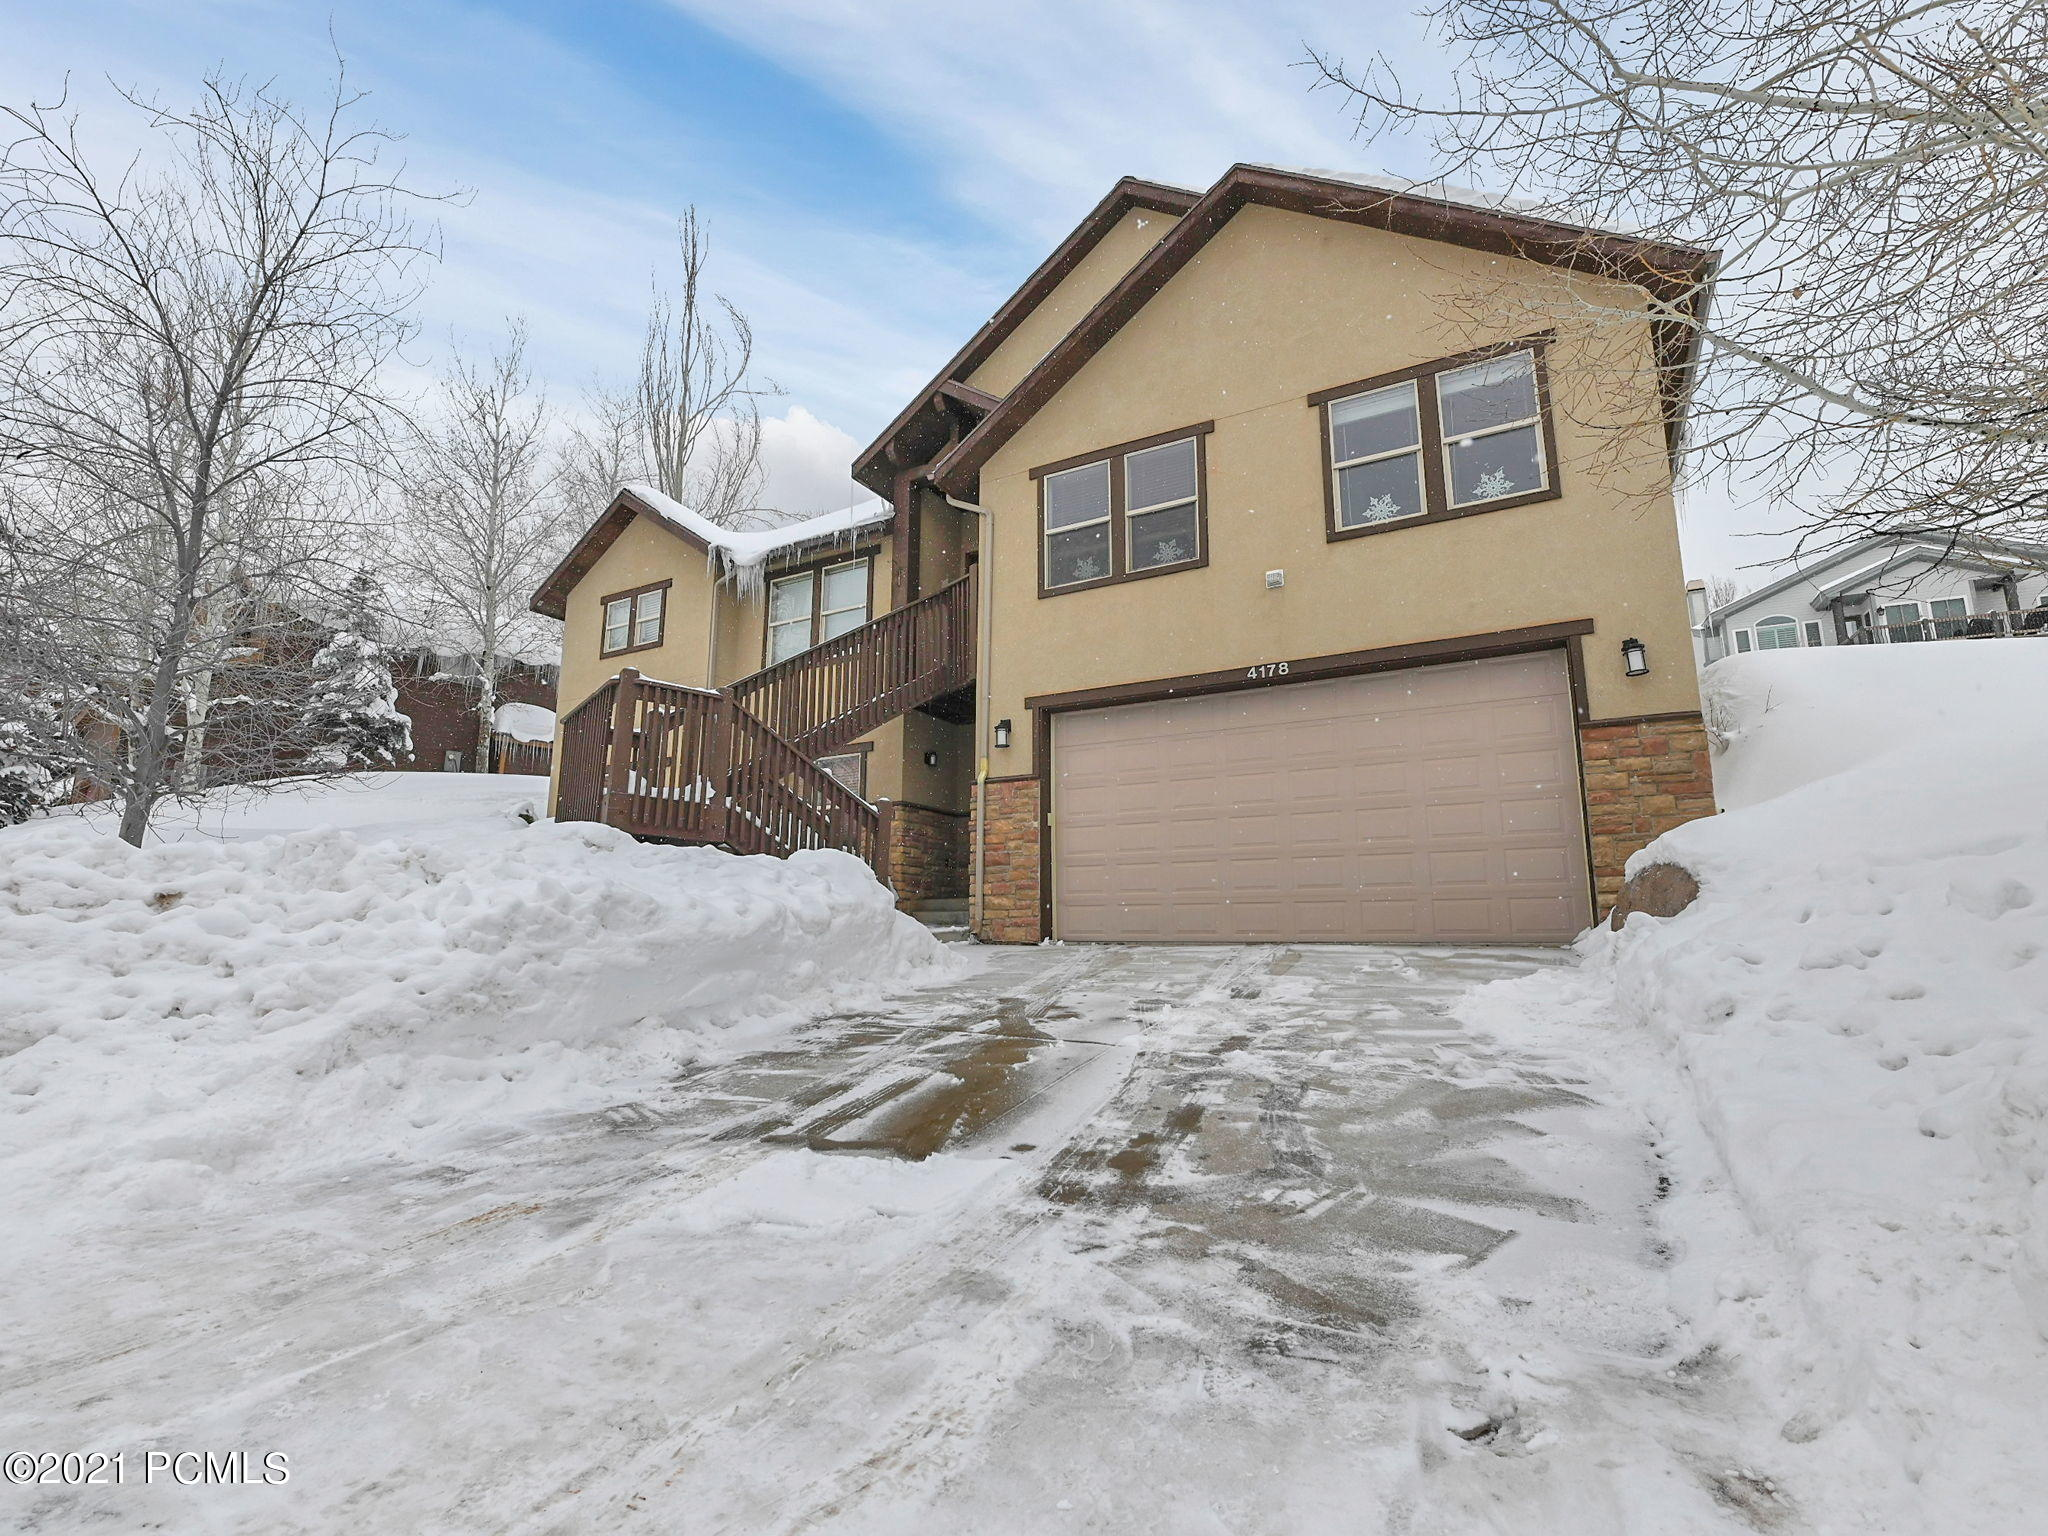 4178 Sunrise Drive, Park City, Utah 84098, 5 Bedrooms Bedrooms, ,4 BathroomsBathrooms,Single Family,For Sale,Sunrise,12100629